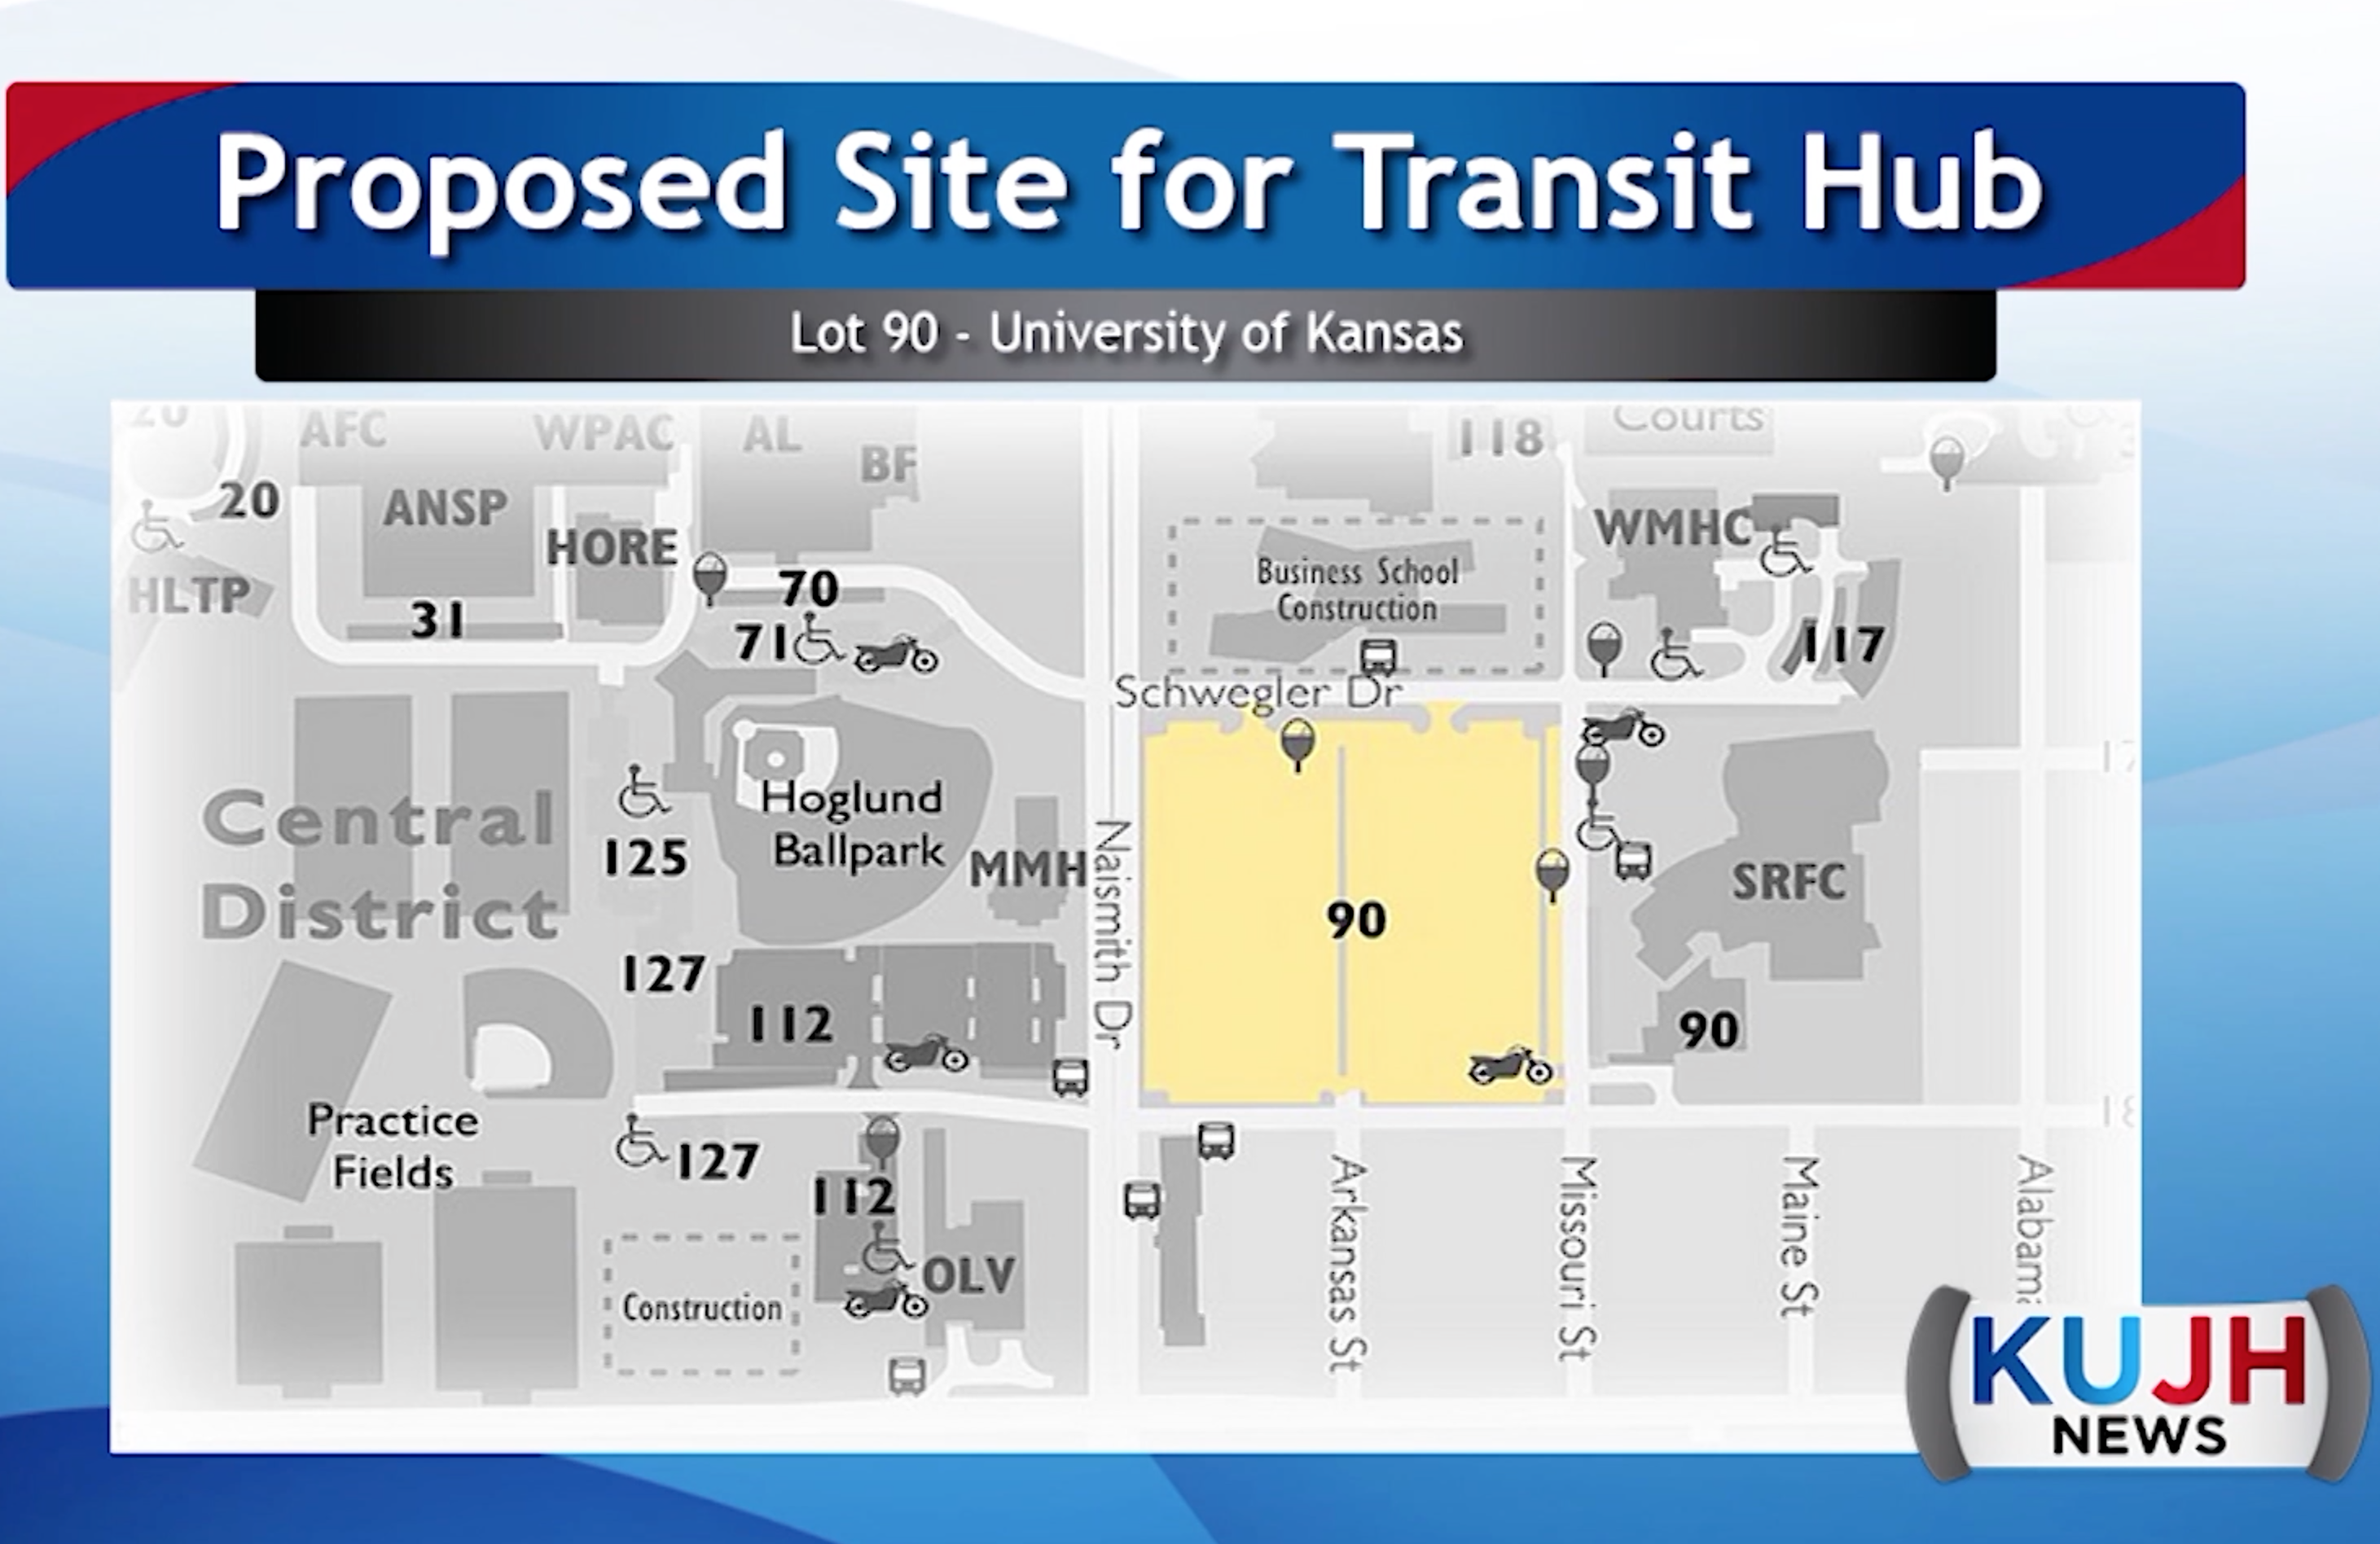 Proposed Grant for Construction of Lot 90 Costs $30 million